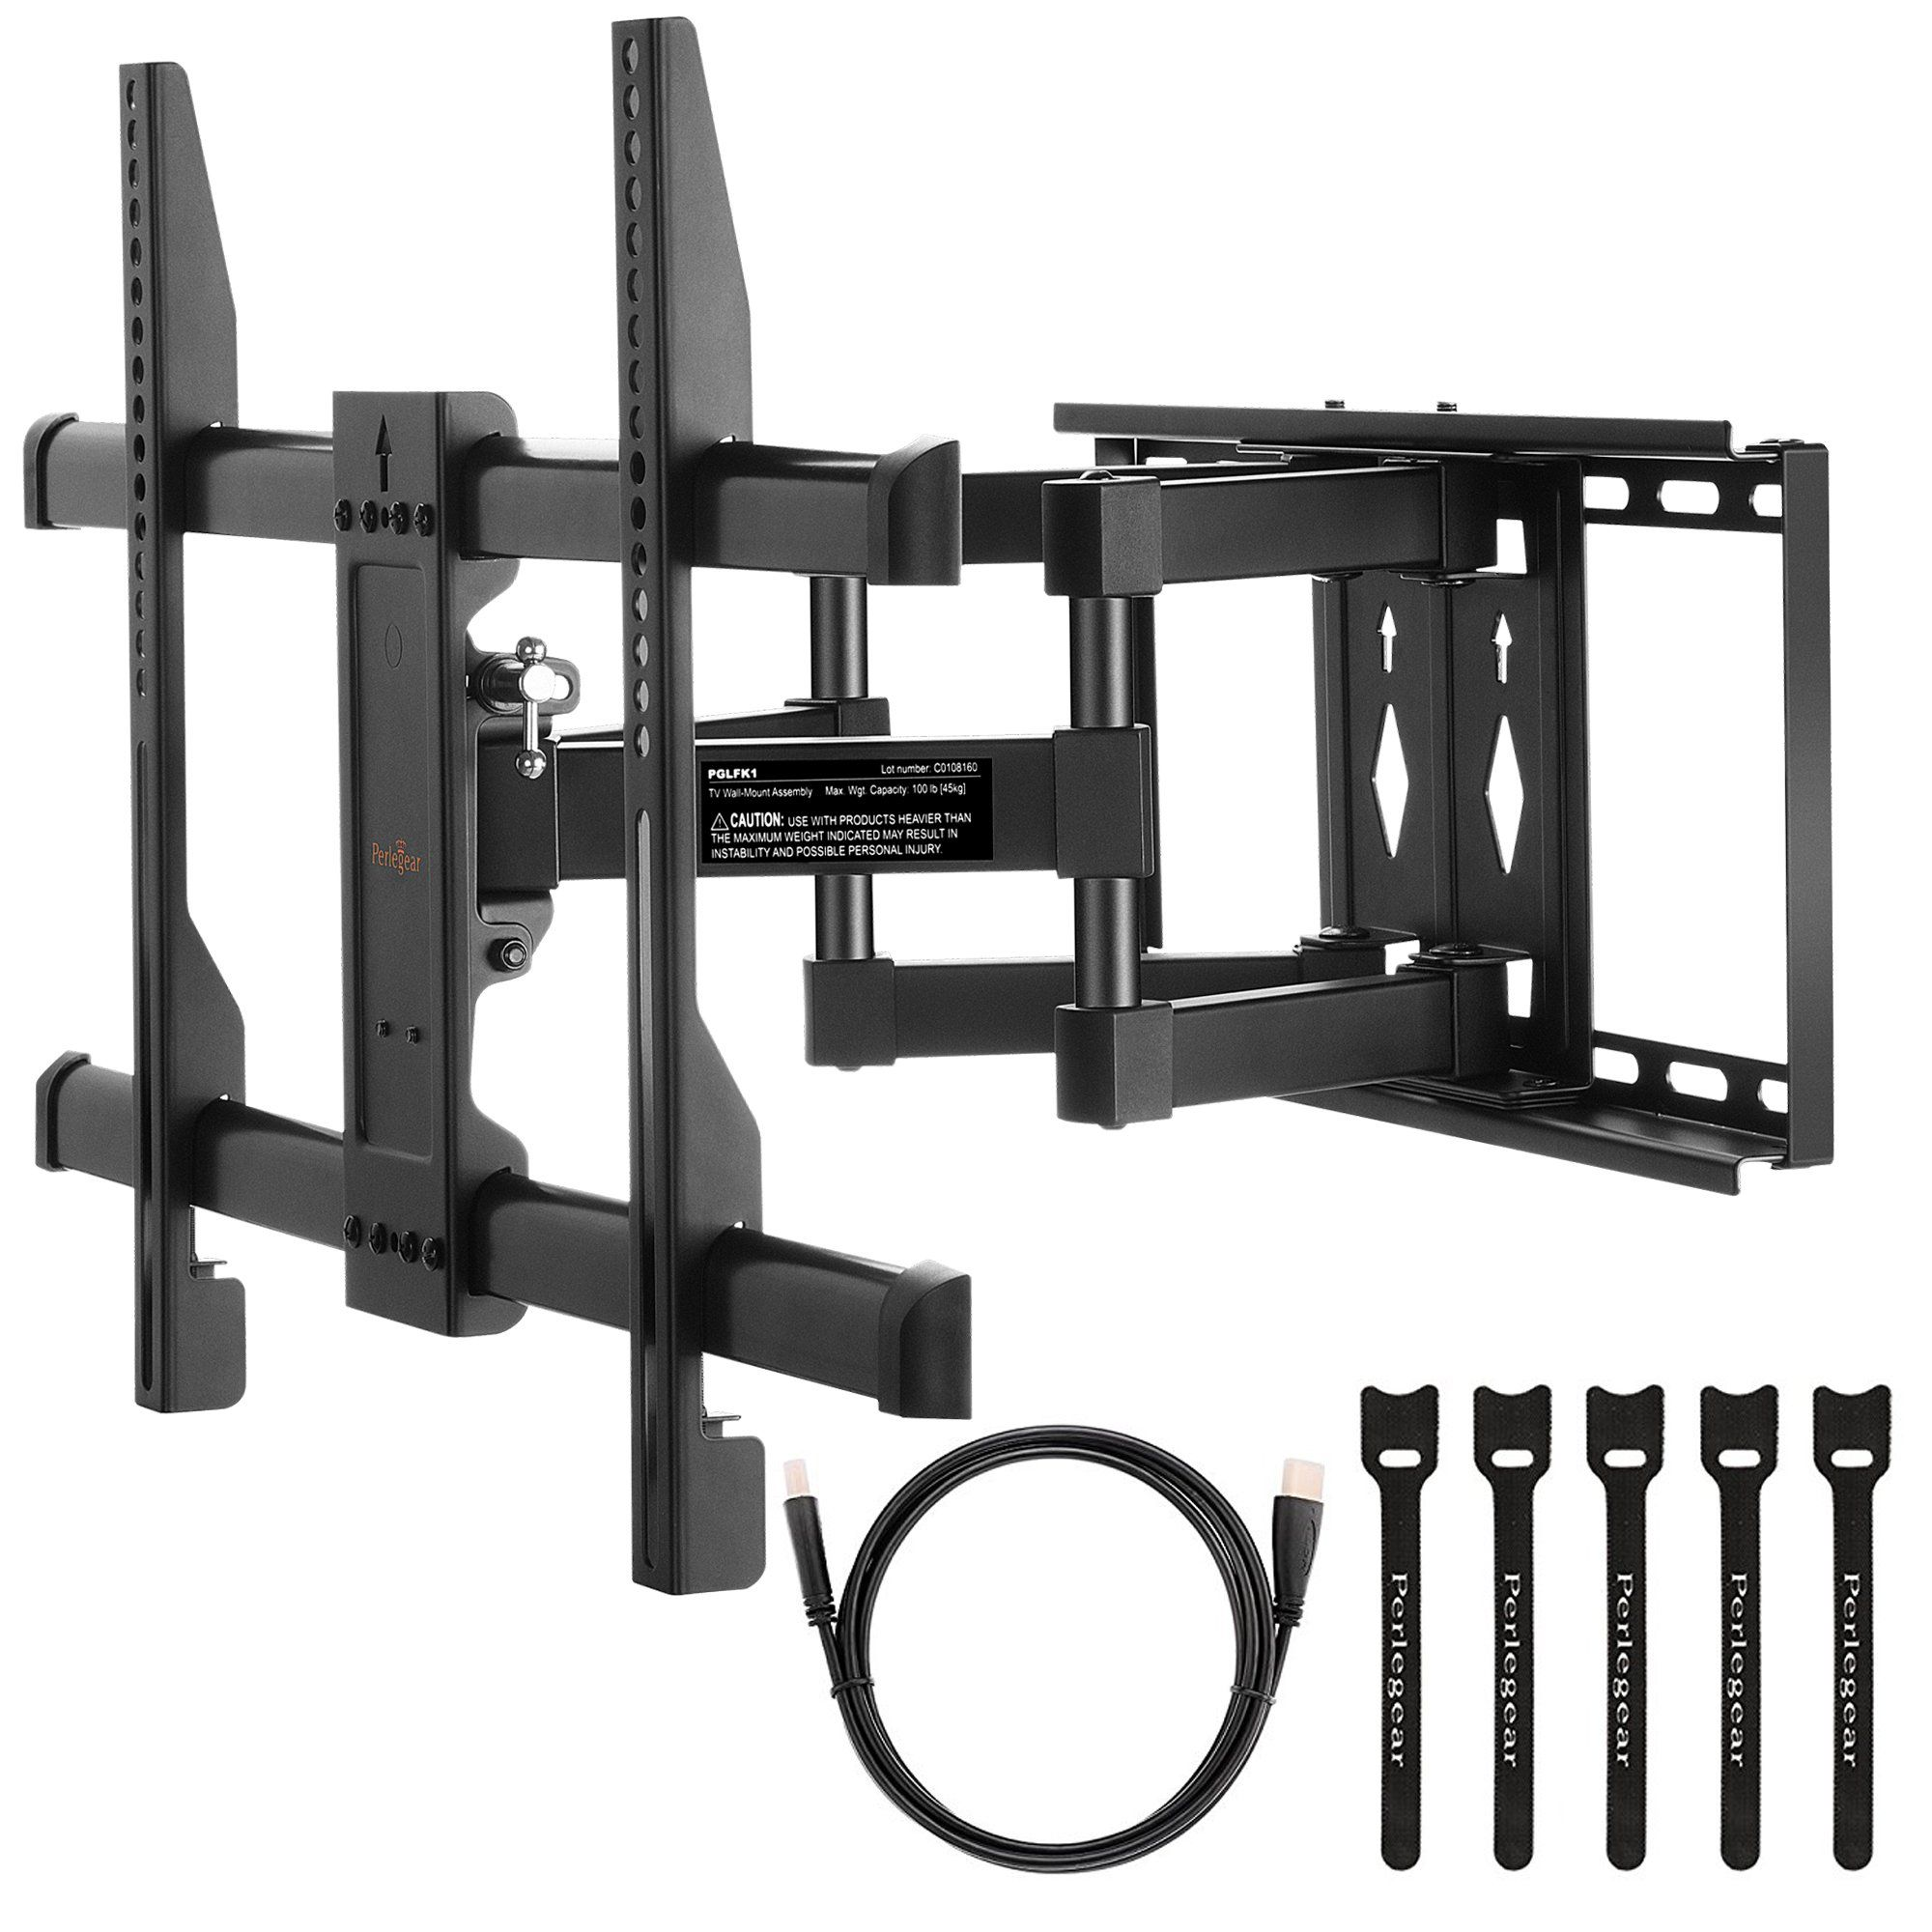 Perlegear Full Motion Tv Wall Mount Bracket With Dual Articulating